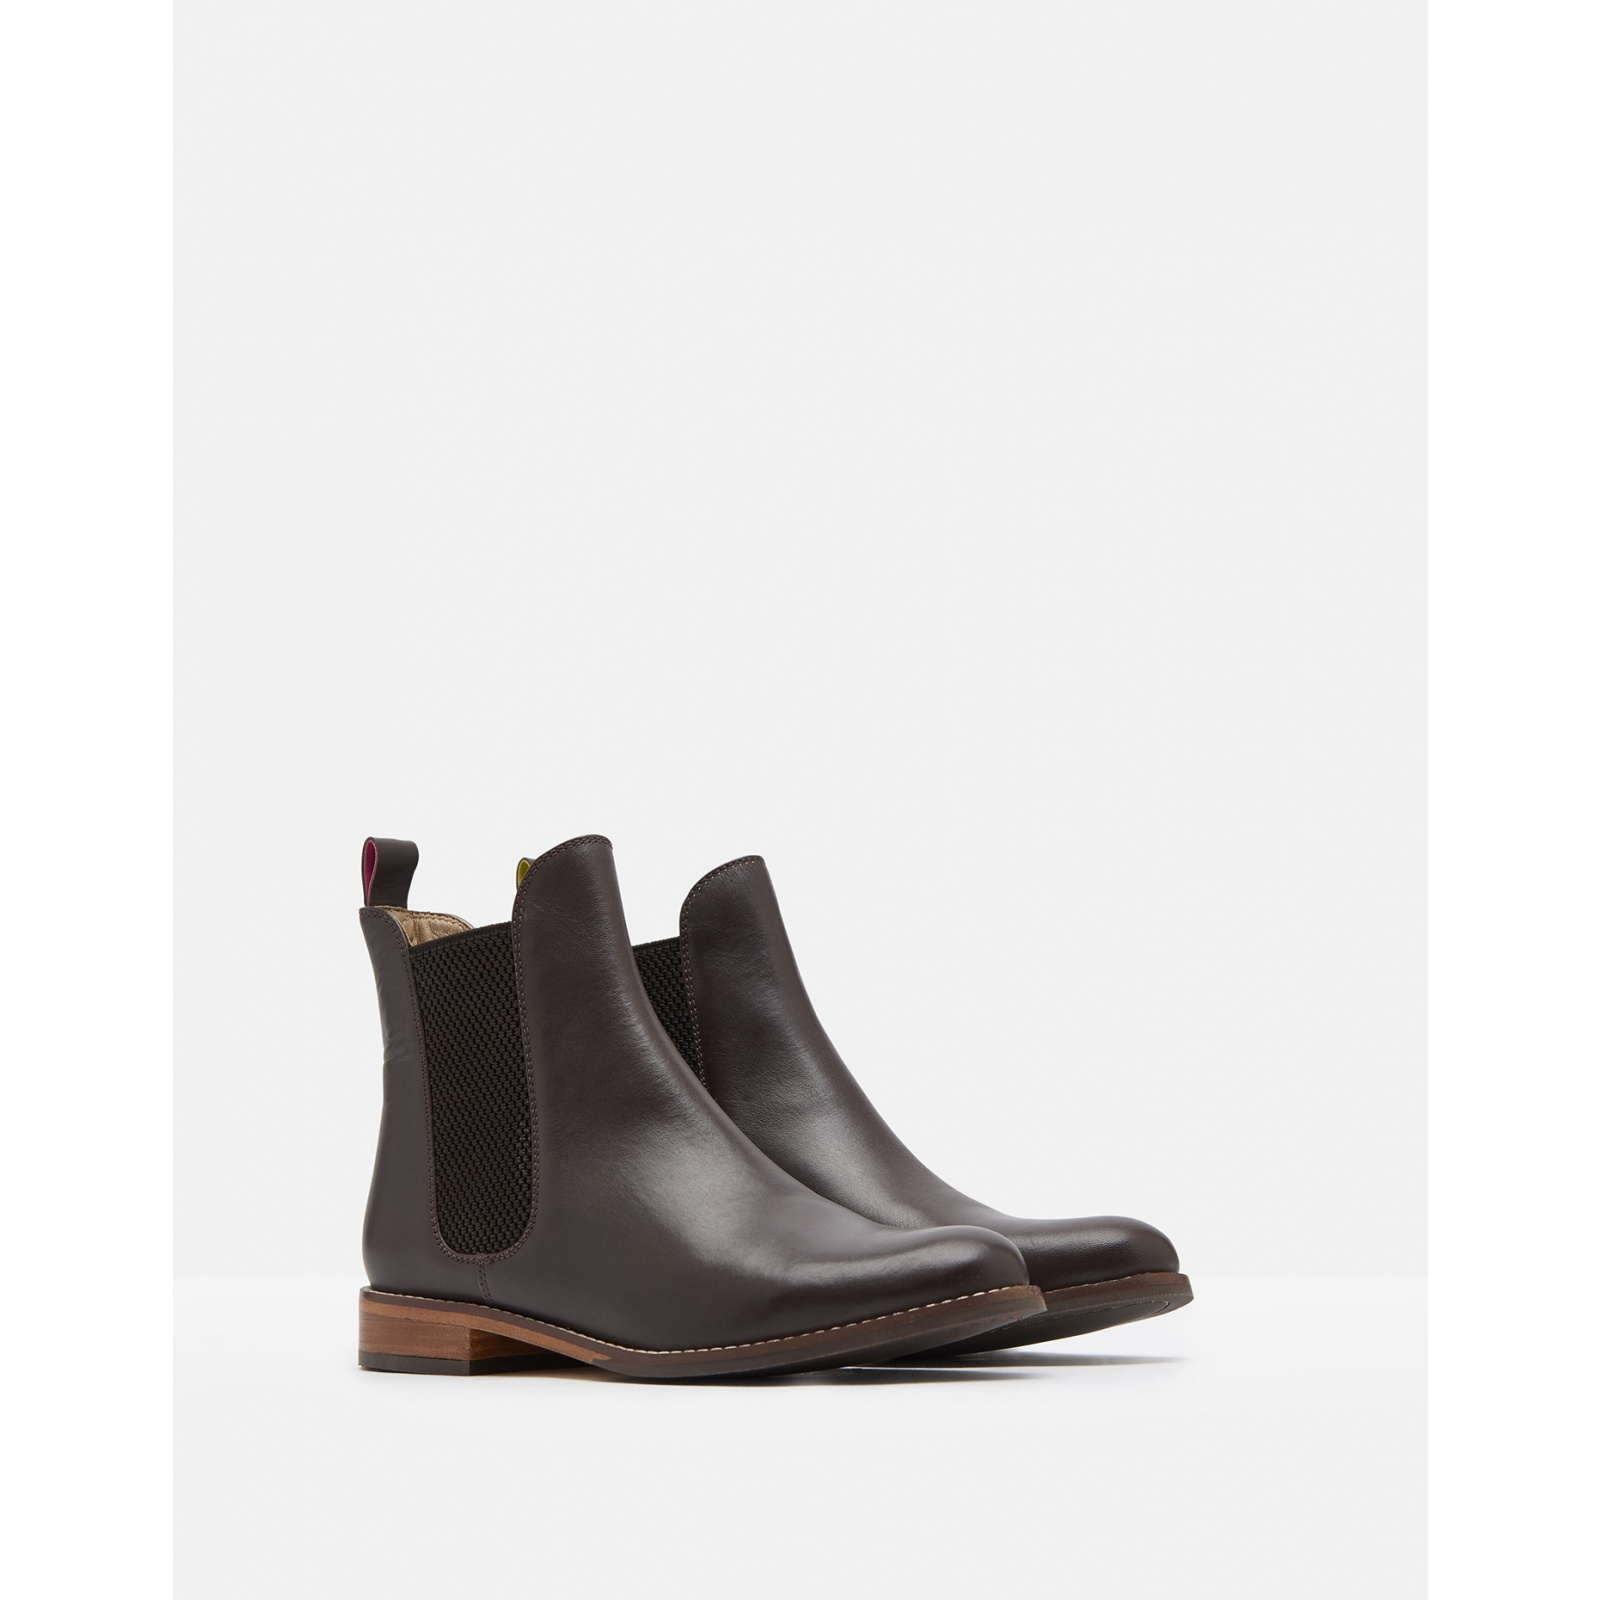 Joules-Westbourne-Premium-Leather-Chelsea-Boot-ALL-COLOURS miniature 5